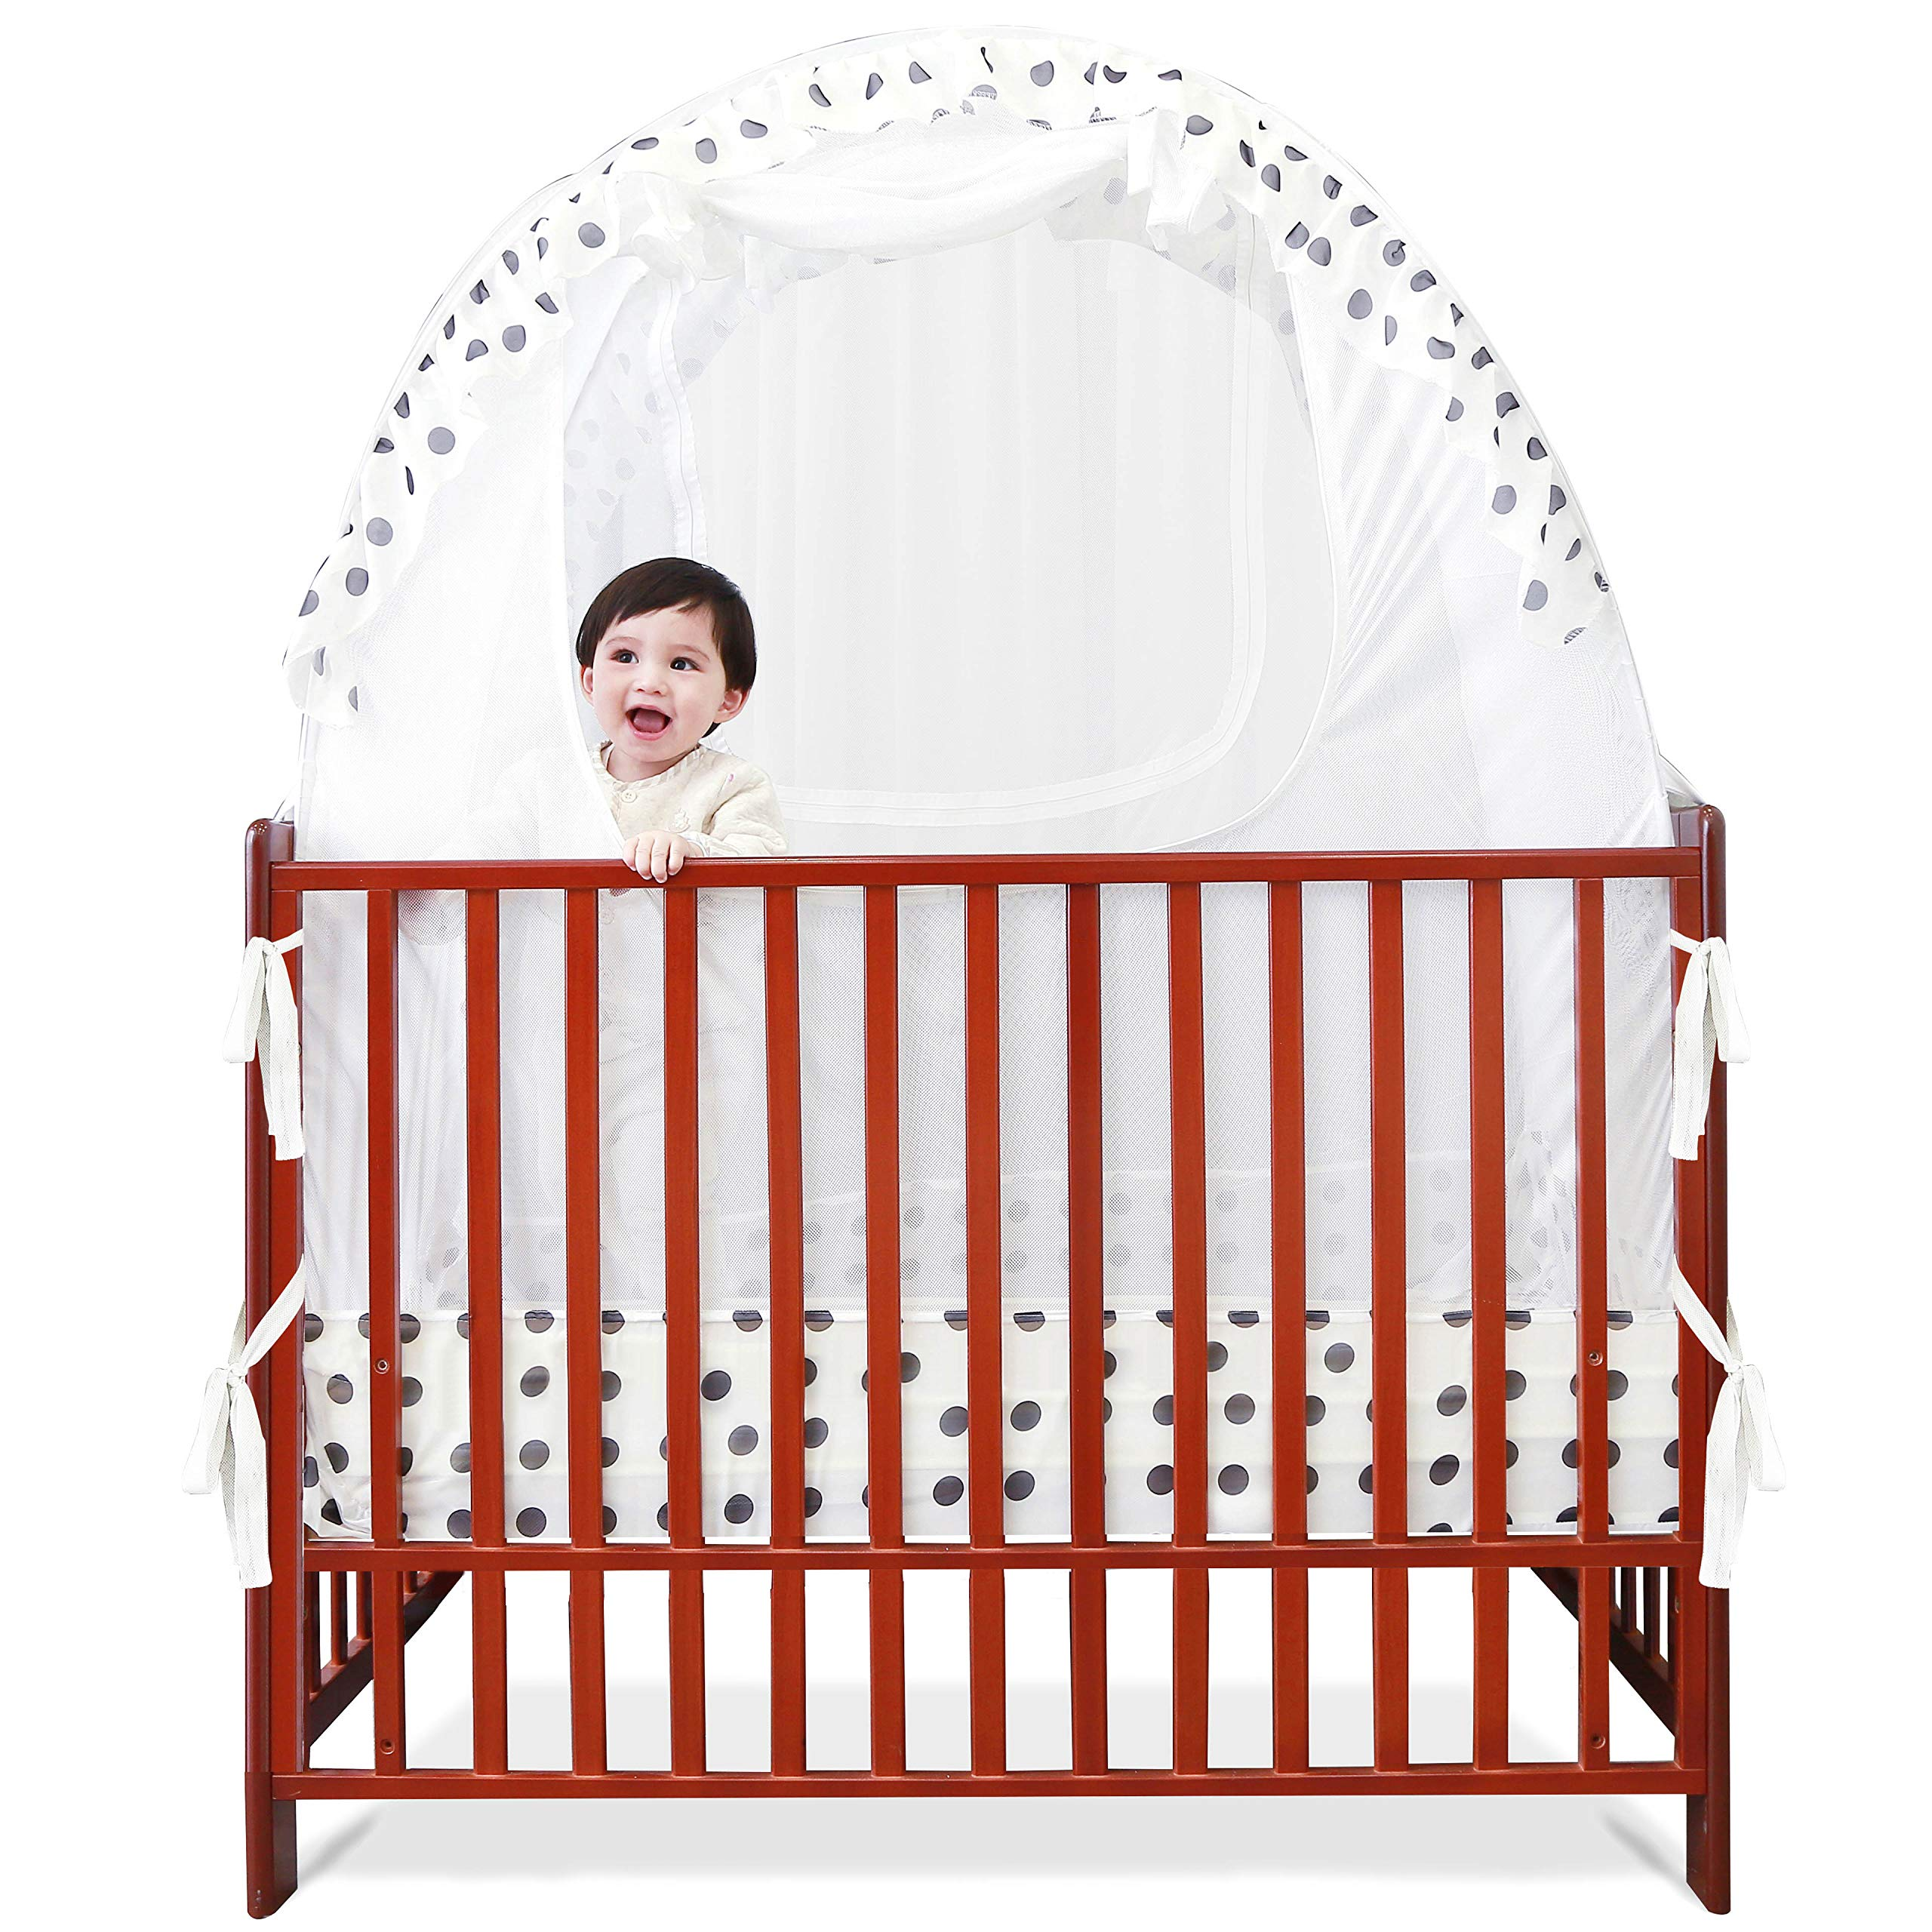 SDADI Baby Crib Safety Tent Pop Up Mosquito Net with Baby Monitor Hang Ribbon,Toddler Bed Canopy Netting Cover  Dots WLCN01D by SDADI